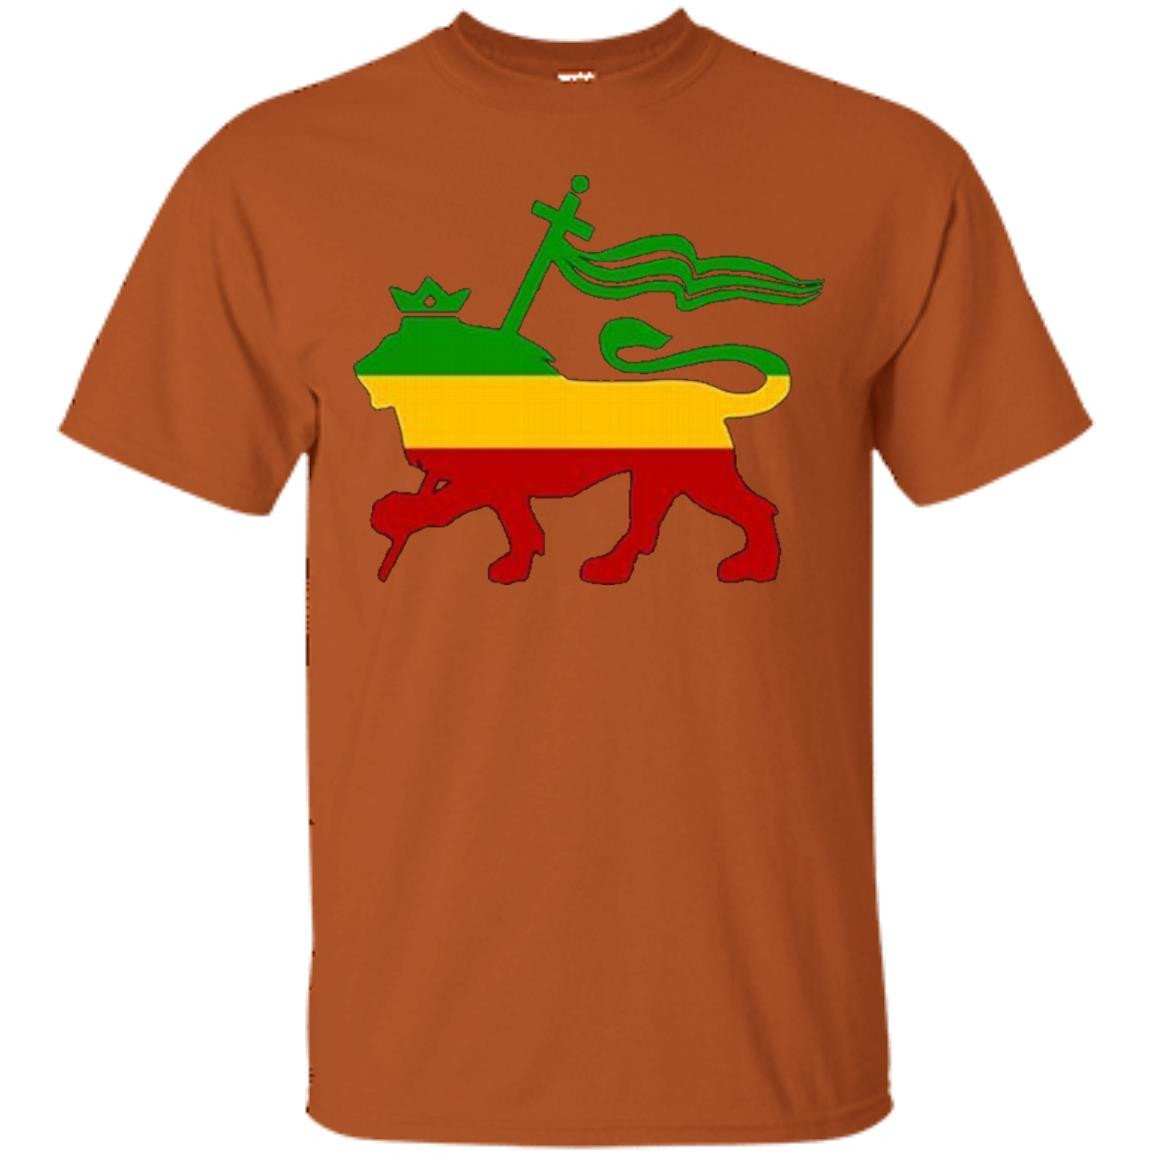 Double Sided Shirt Lion Of Judah Rasta Reggae Roots Clothing - T-Shirt